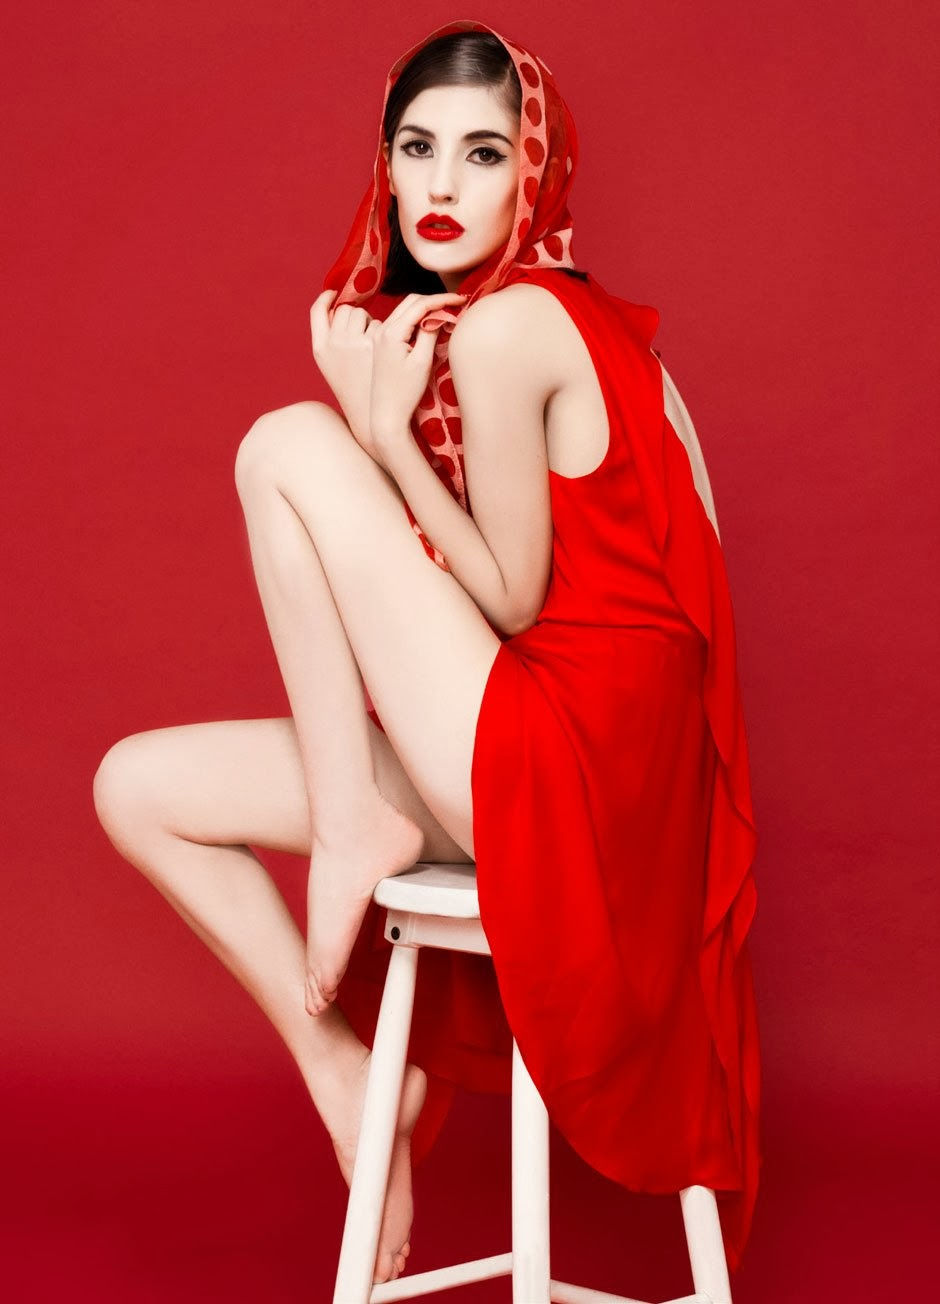 Red+American+Beauty002